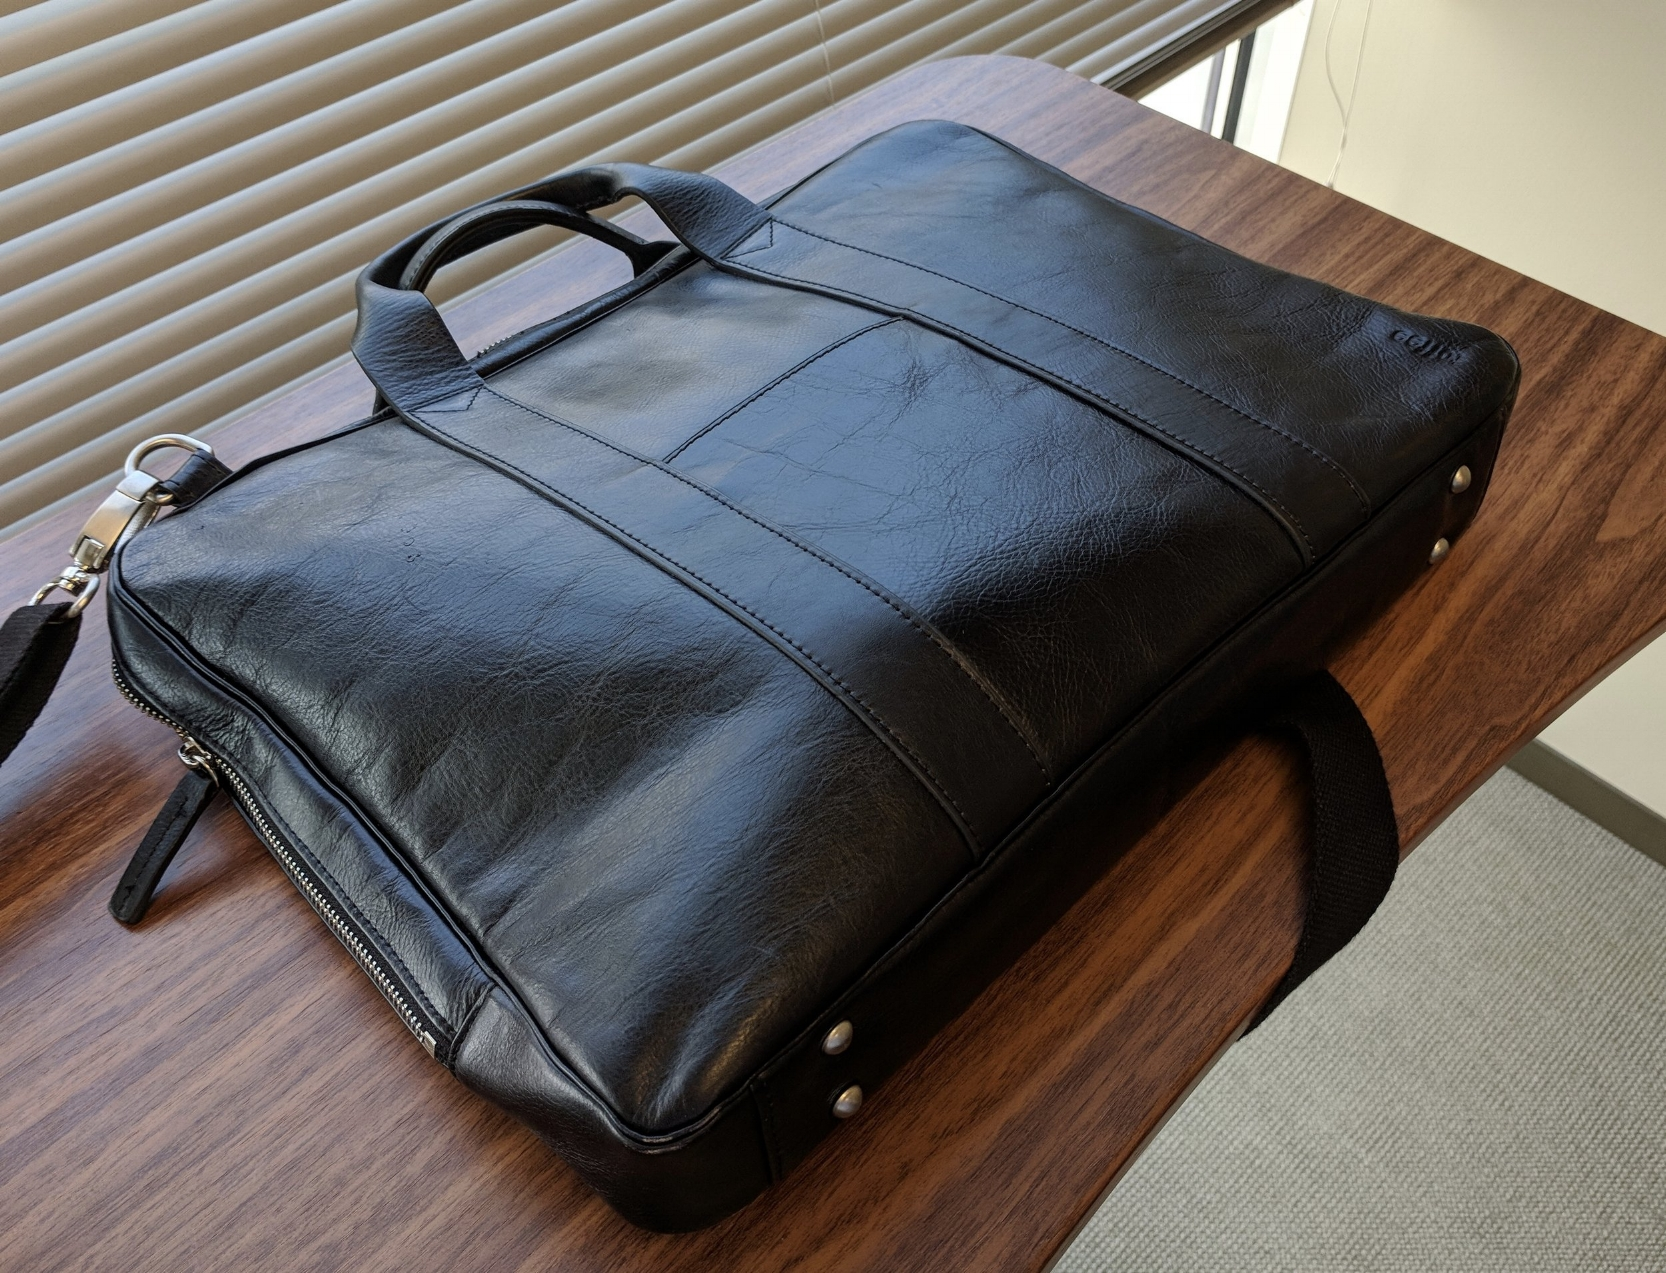 """The Lincoln briefcase features what I would describe as an """"understated business"""" look. It also sports a reinforced base with metal feet, which are great if you have to set your bag down at the airport or in a coffee shop and don't want it to fall over onto the gross floor."""